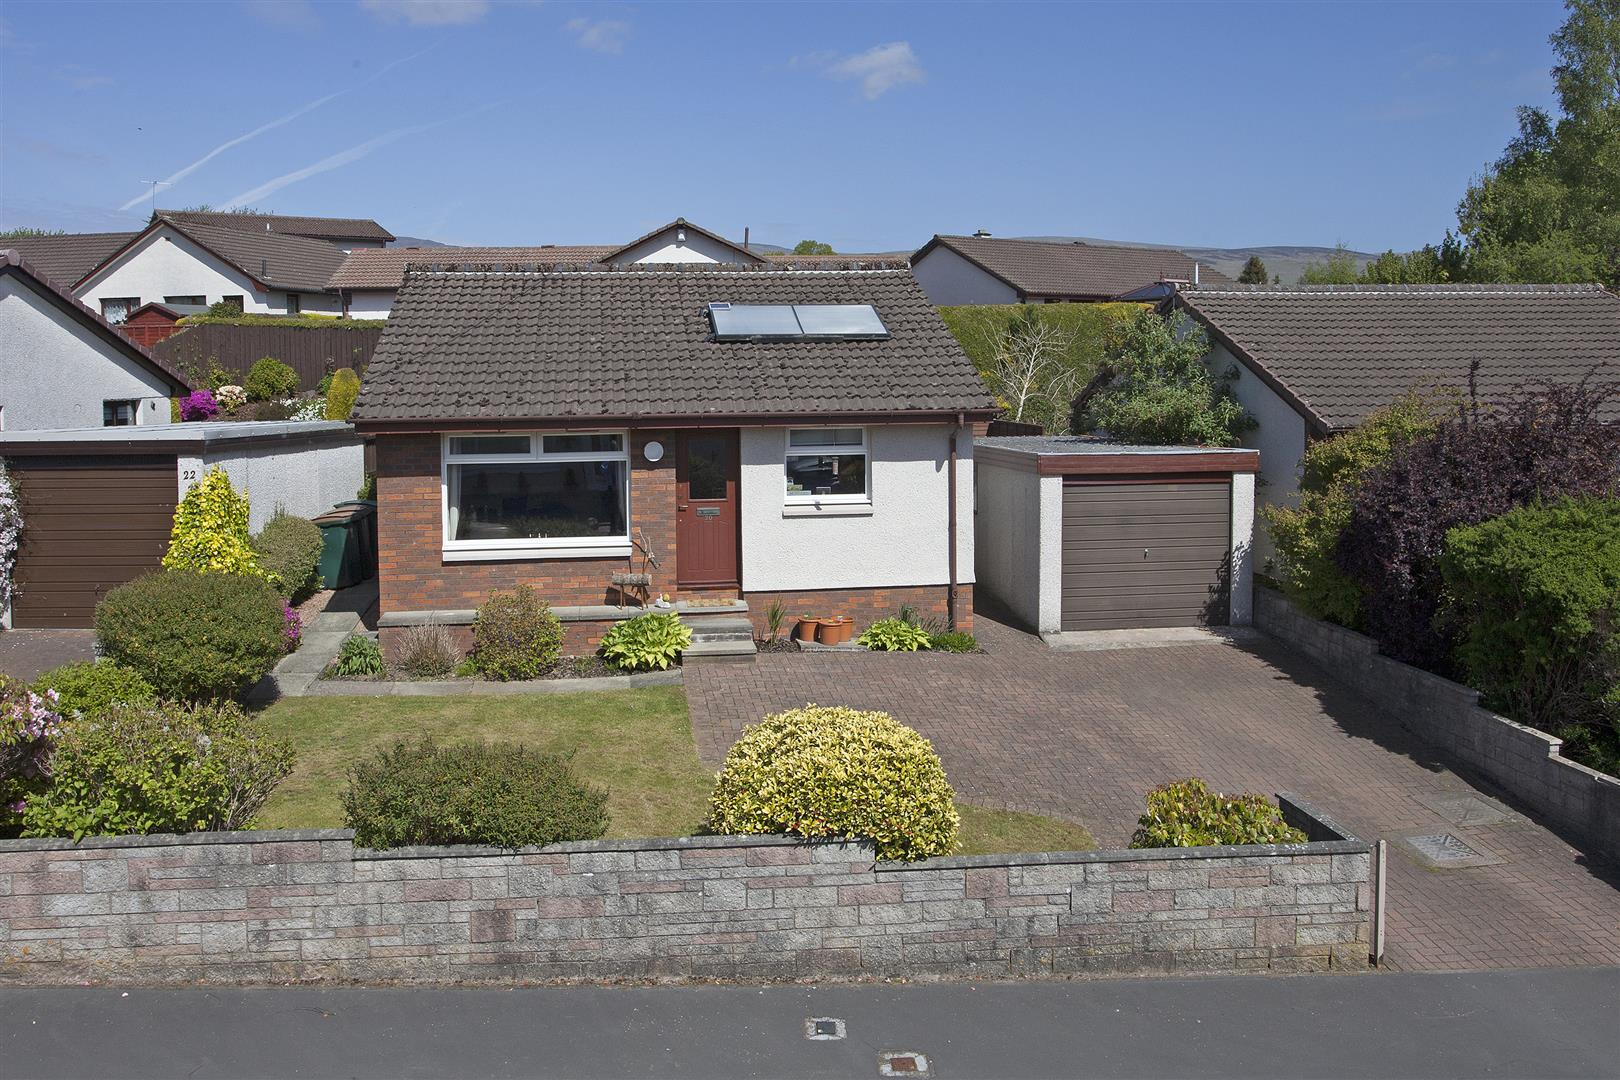 20, Highland Road, Crieff, Perthshire, PH7 4LE, UK